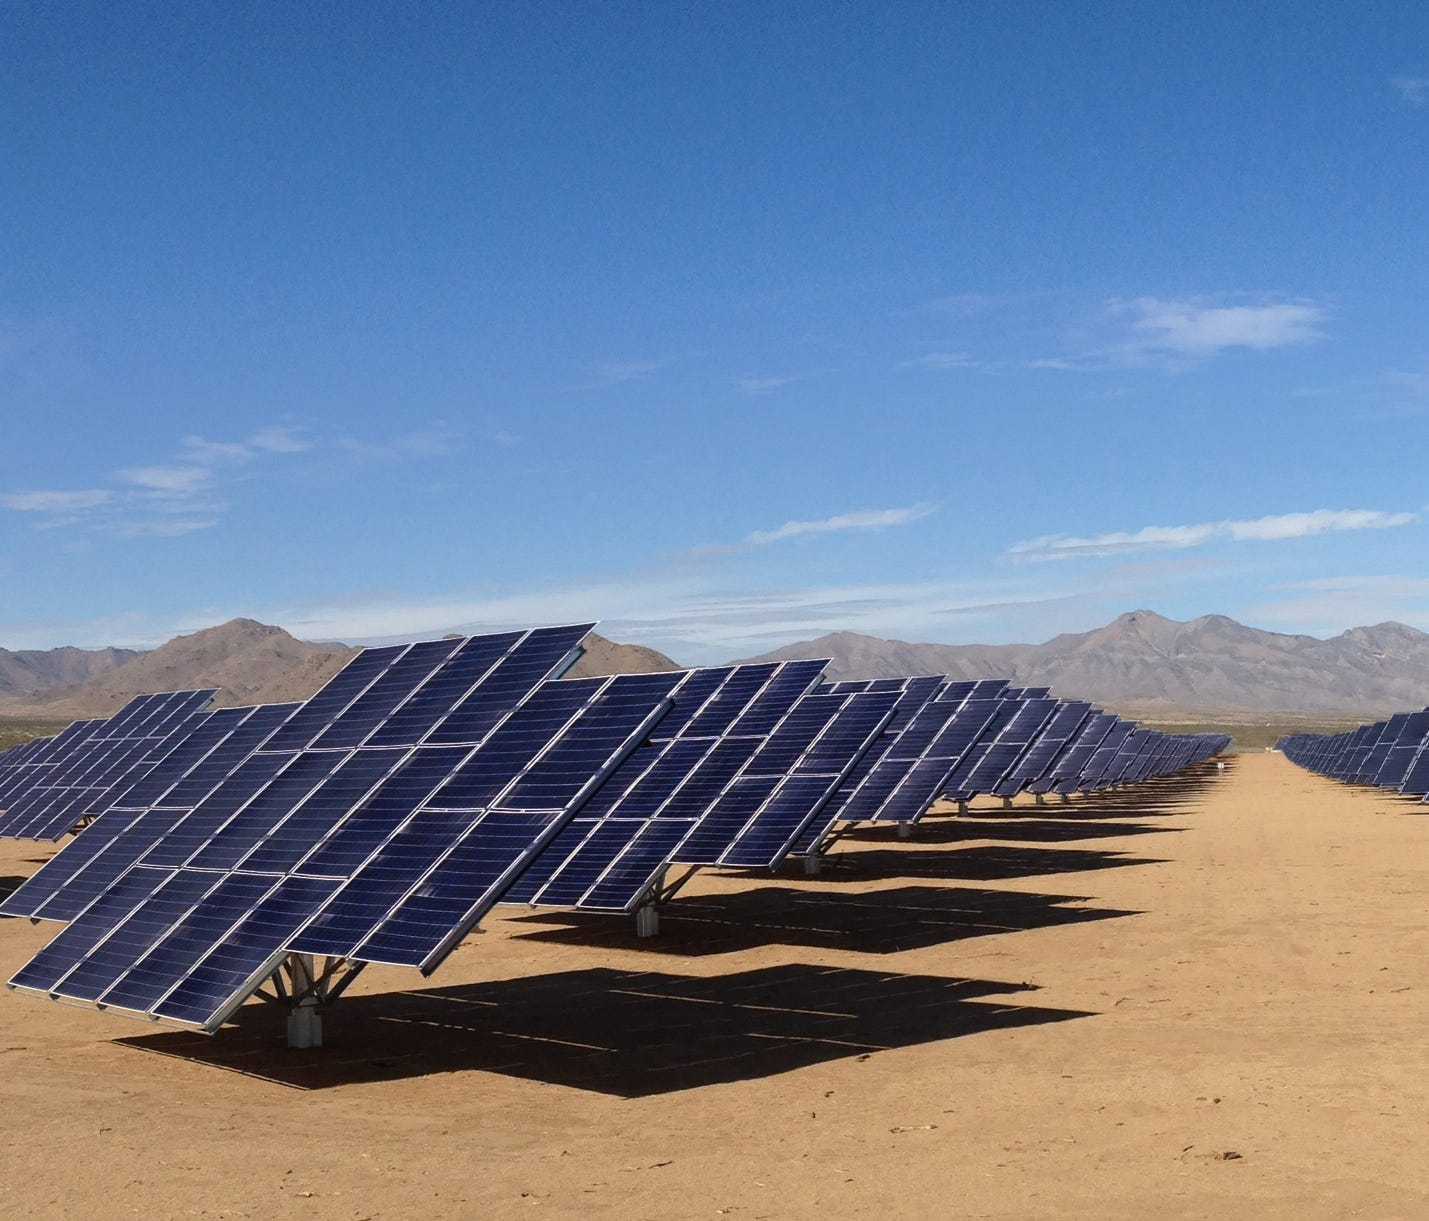 This undated photo from the U.S. Army shows the Army's solar array at White Sands, N.M. Officials with the U.S. Army gathered Wednesday, Jan. 16, 2013 at White Sands Missile Range in southern New Mexico to dedicate the largest of the military branchí